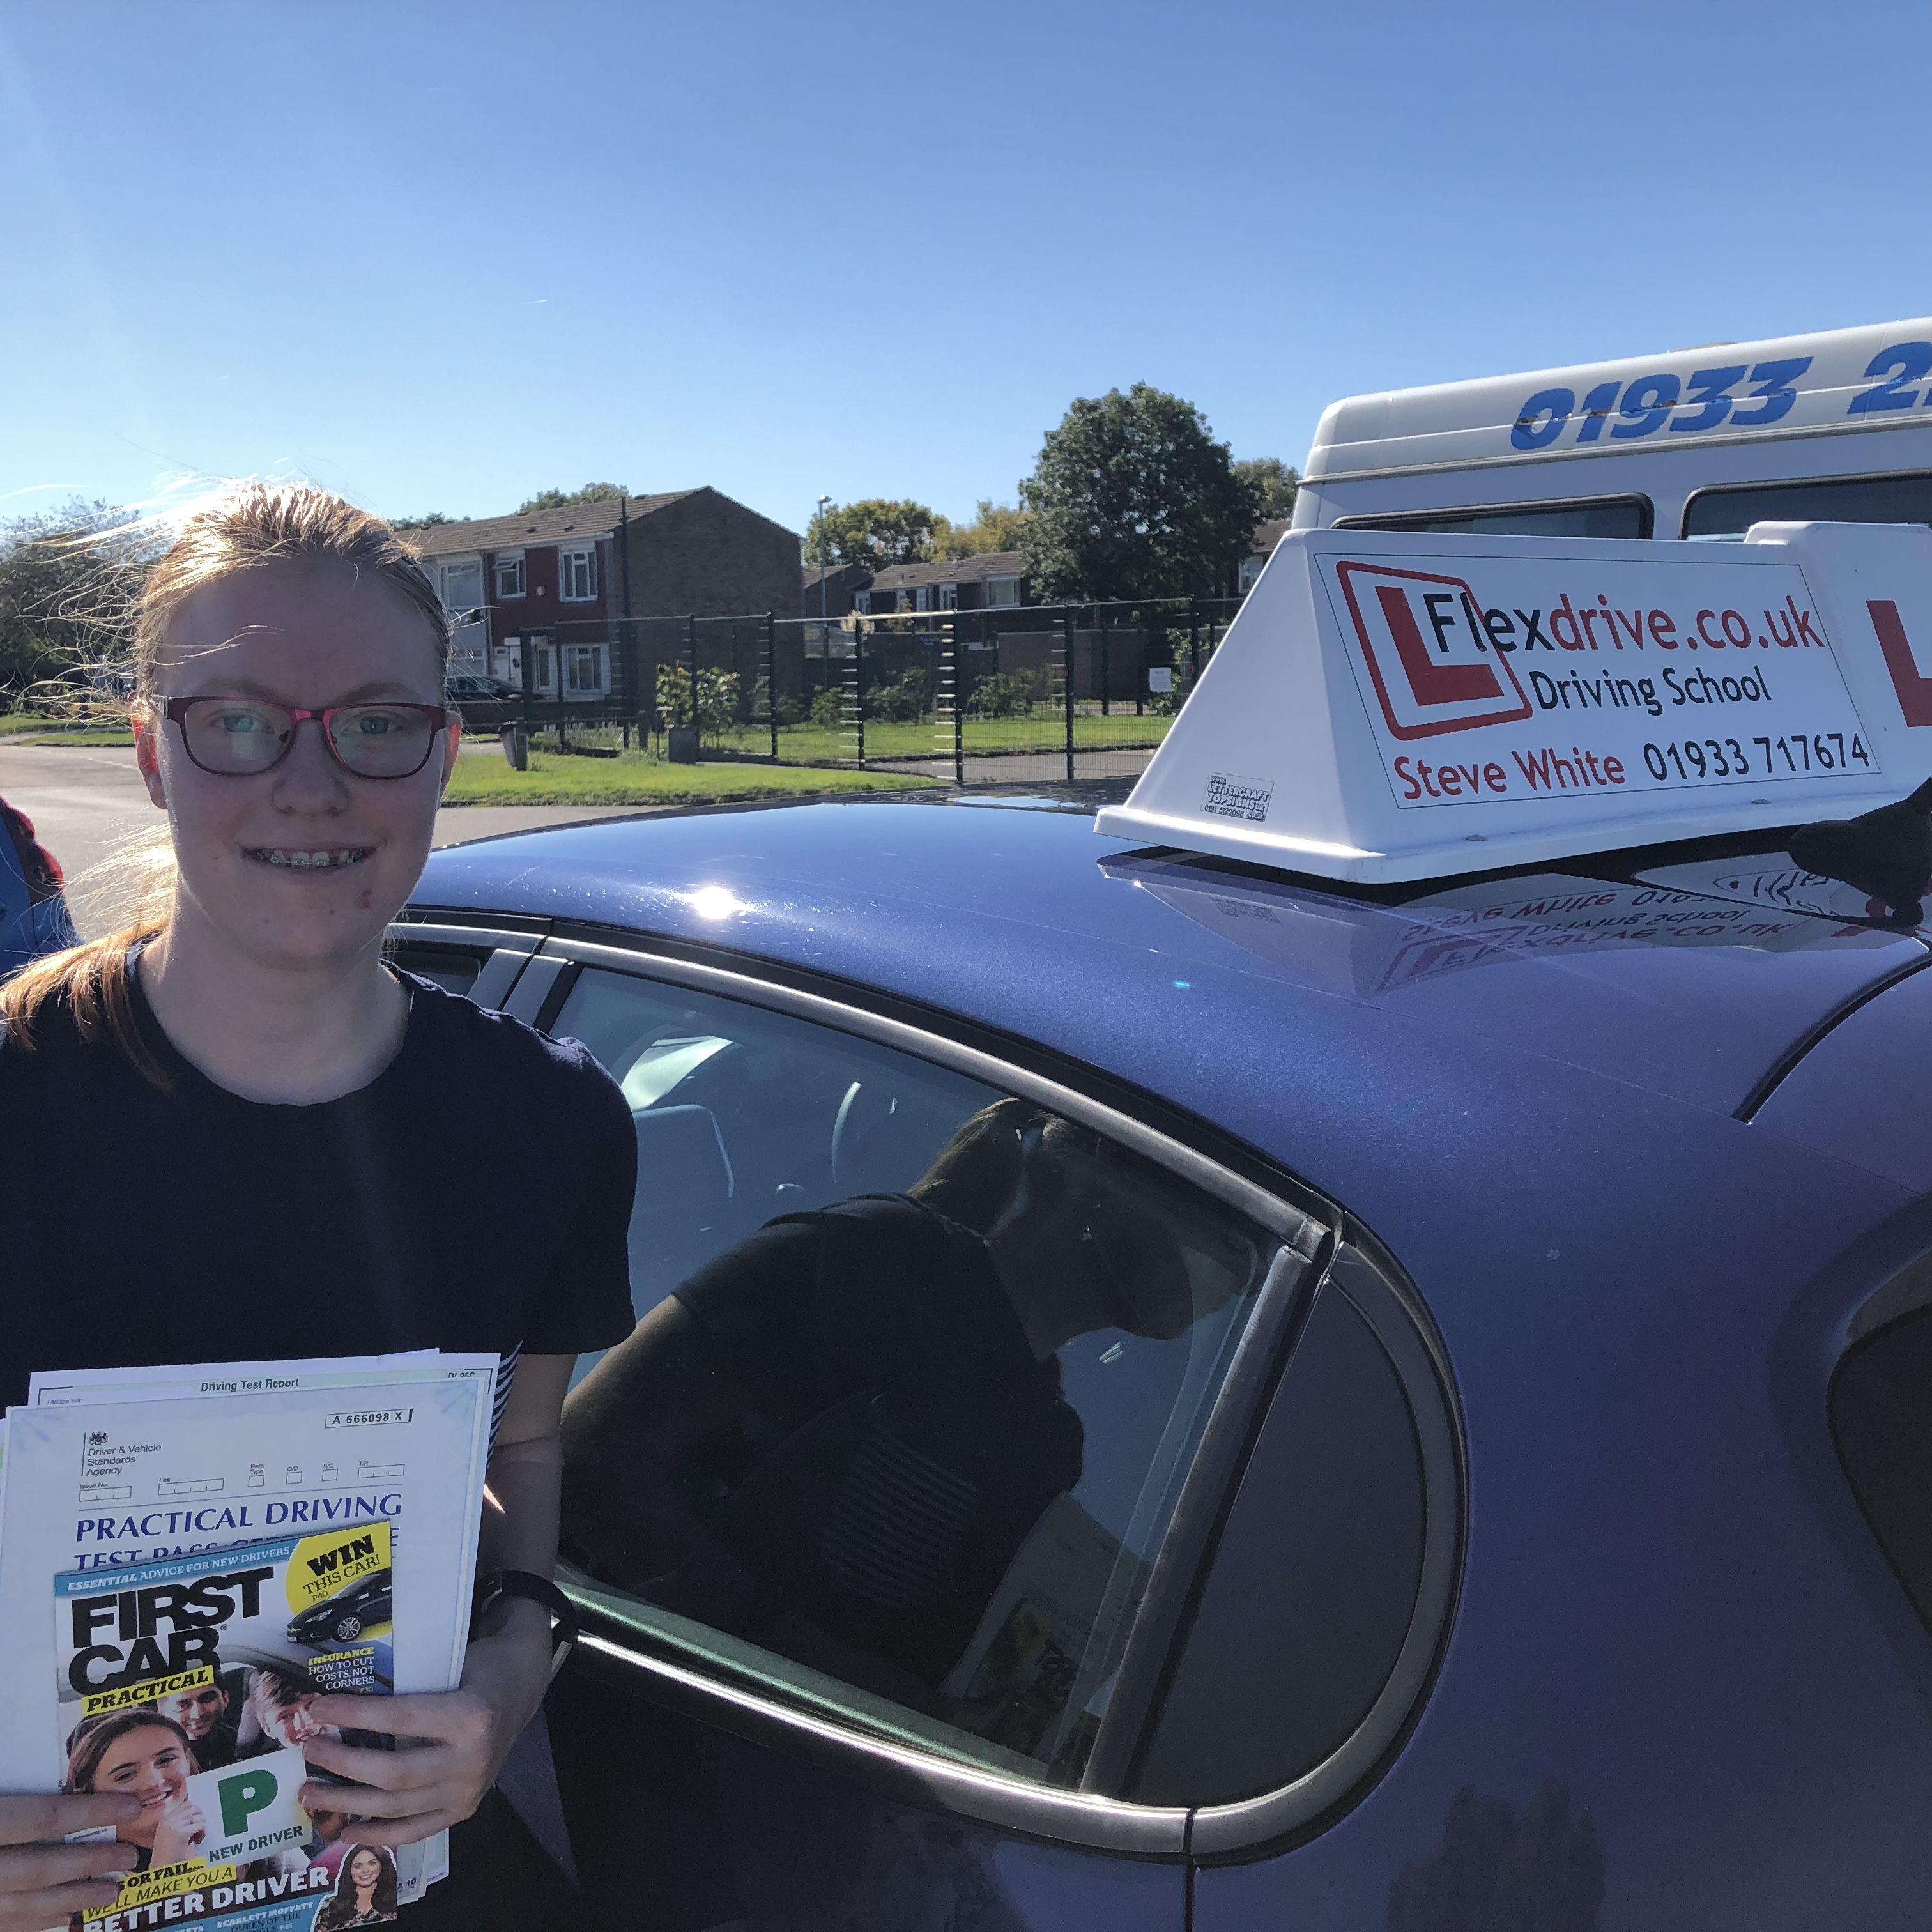 Driving Lessons Wellingborough | Kte passe with Flexdrive Driving School